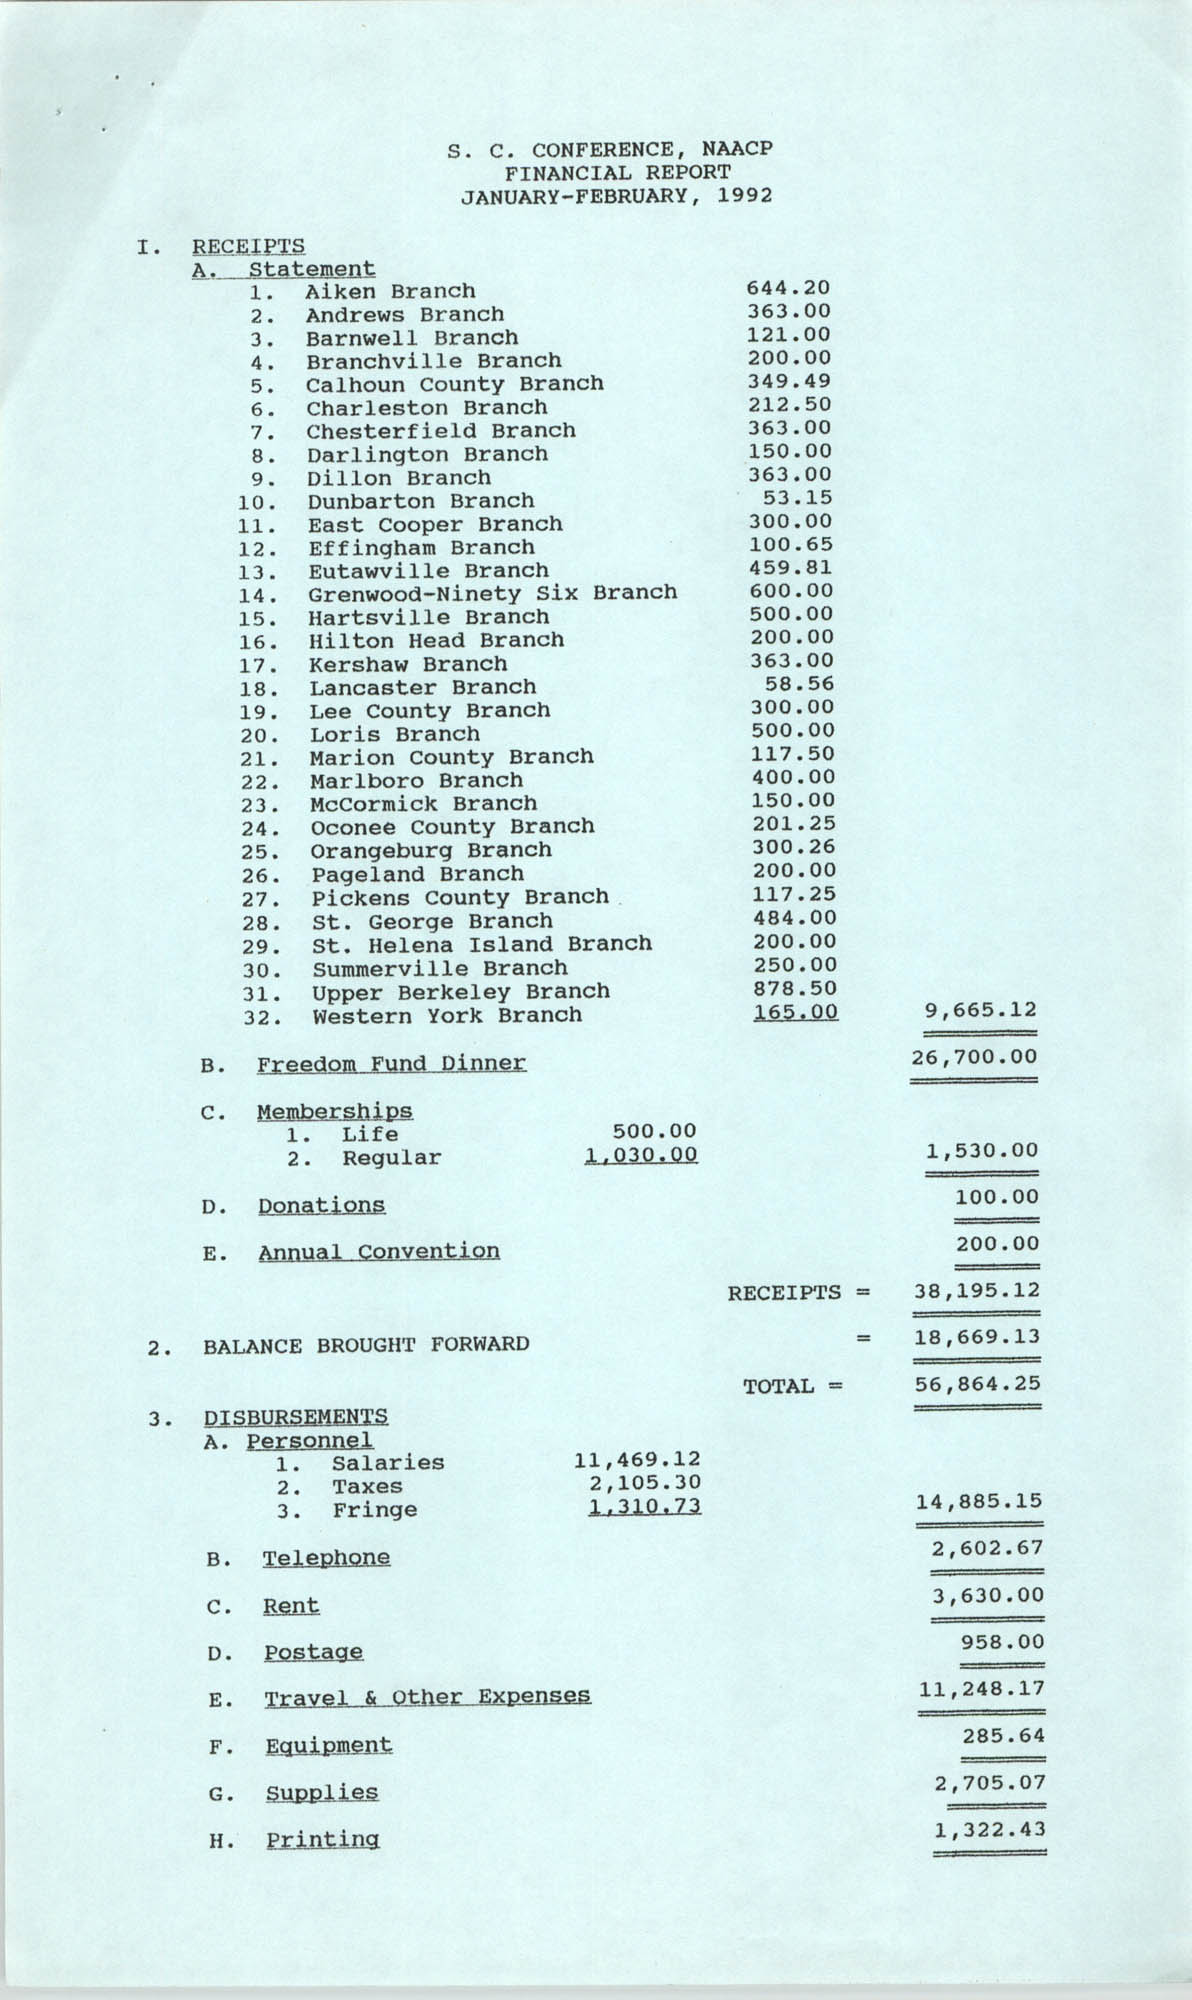 South Carolina Conference of Branches of the NAACP Financial Report, January to February, 1992